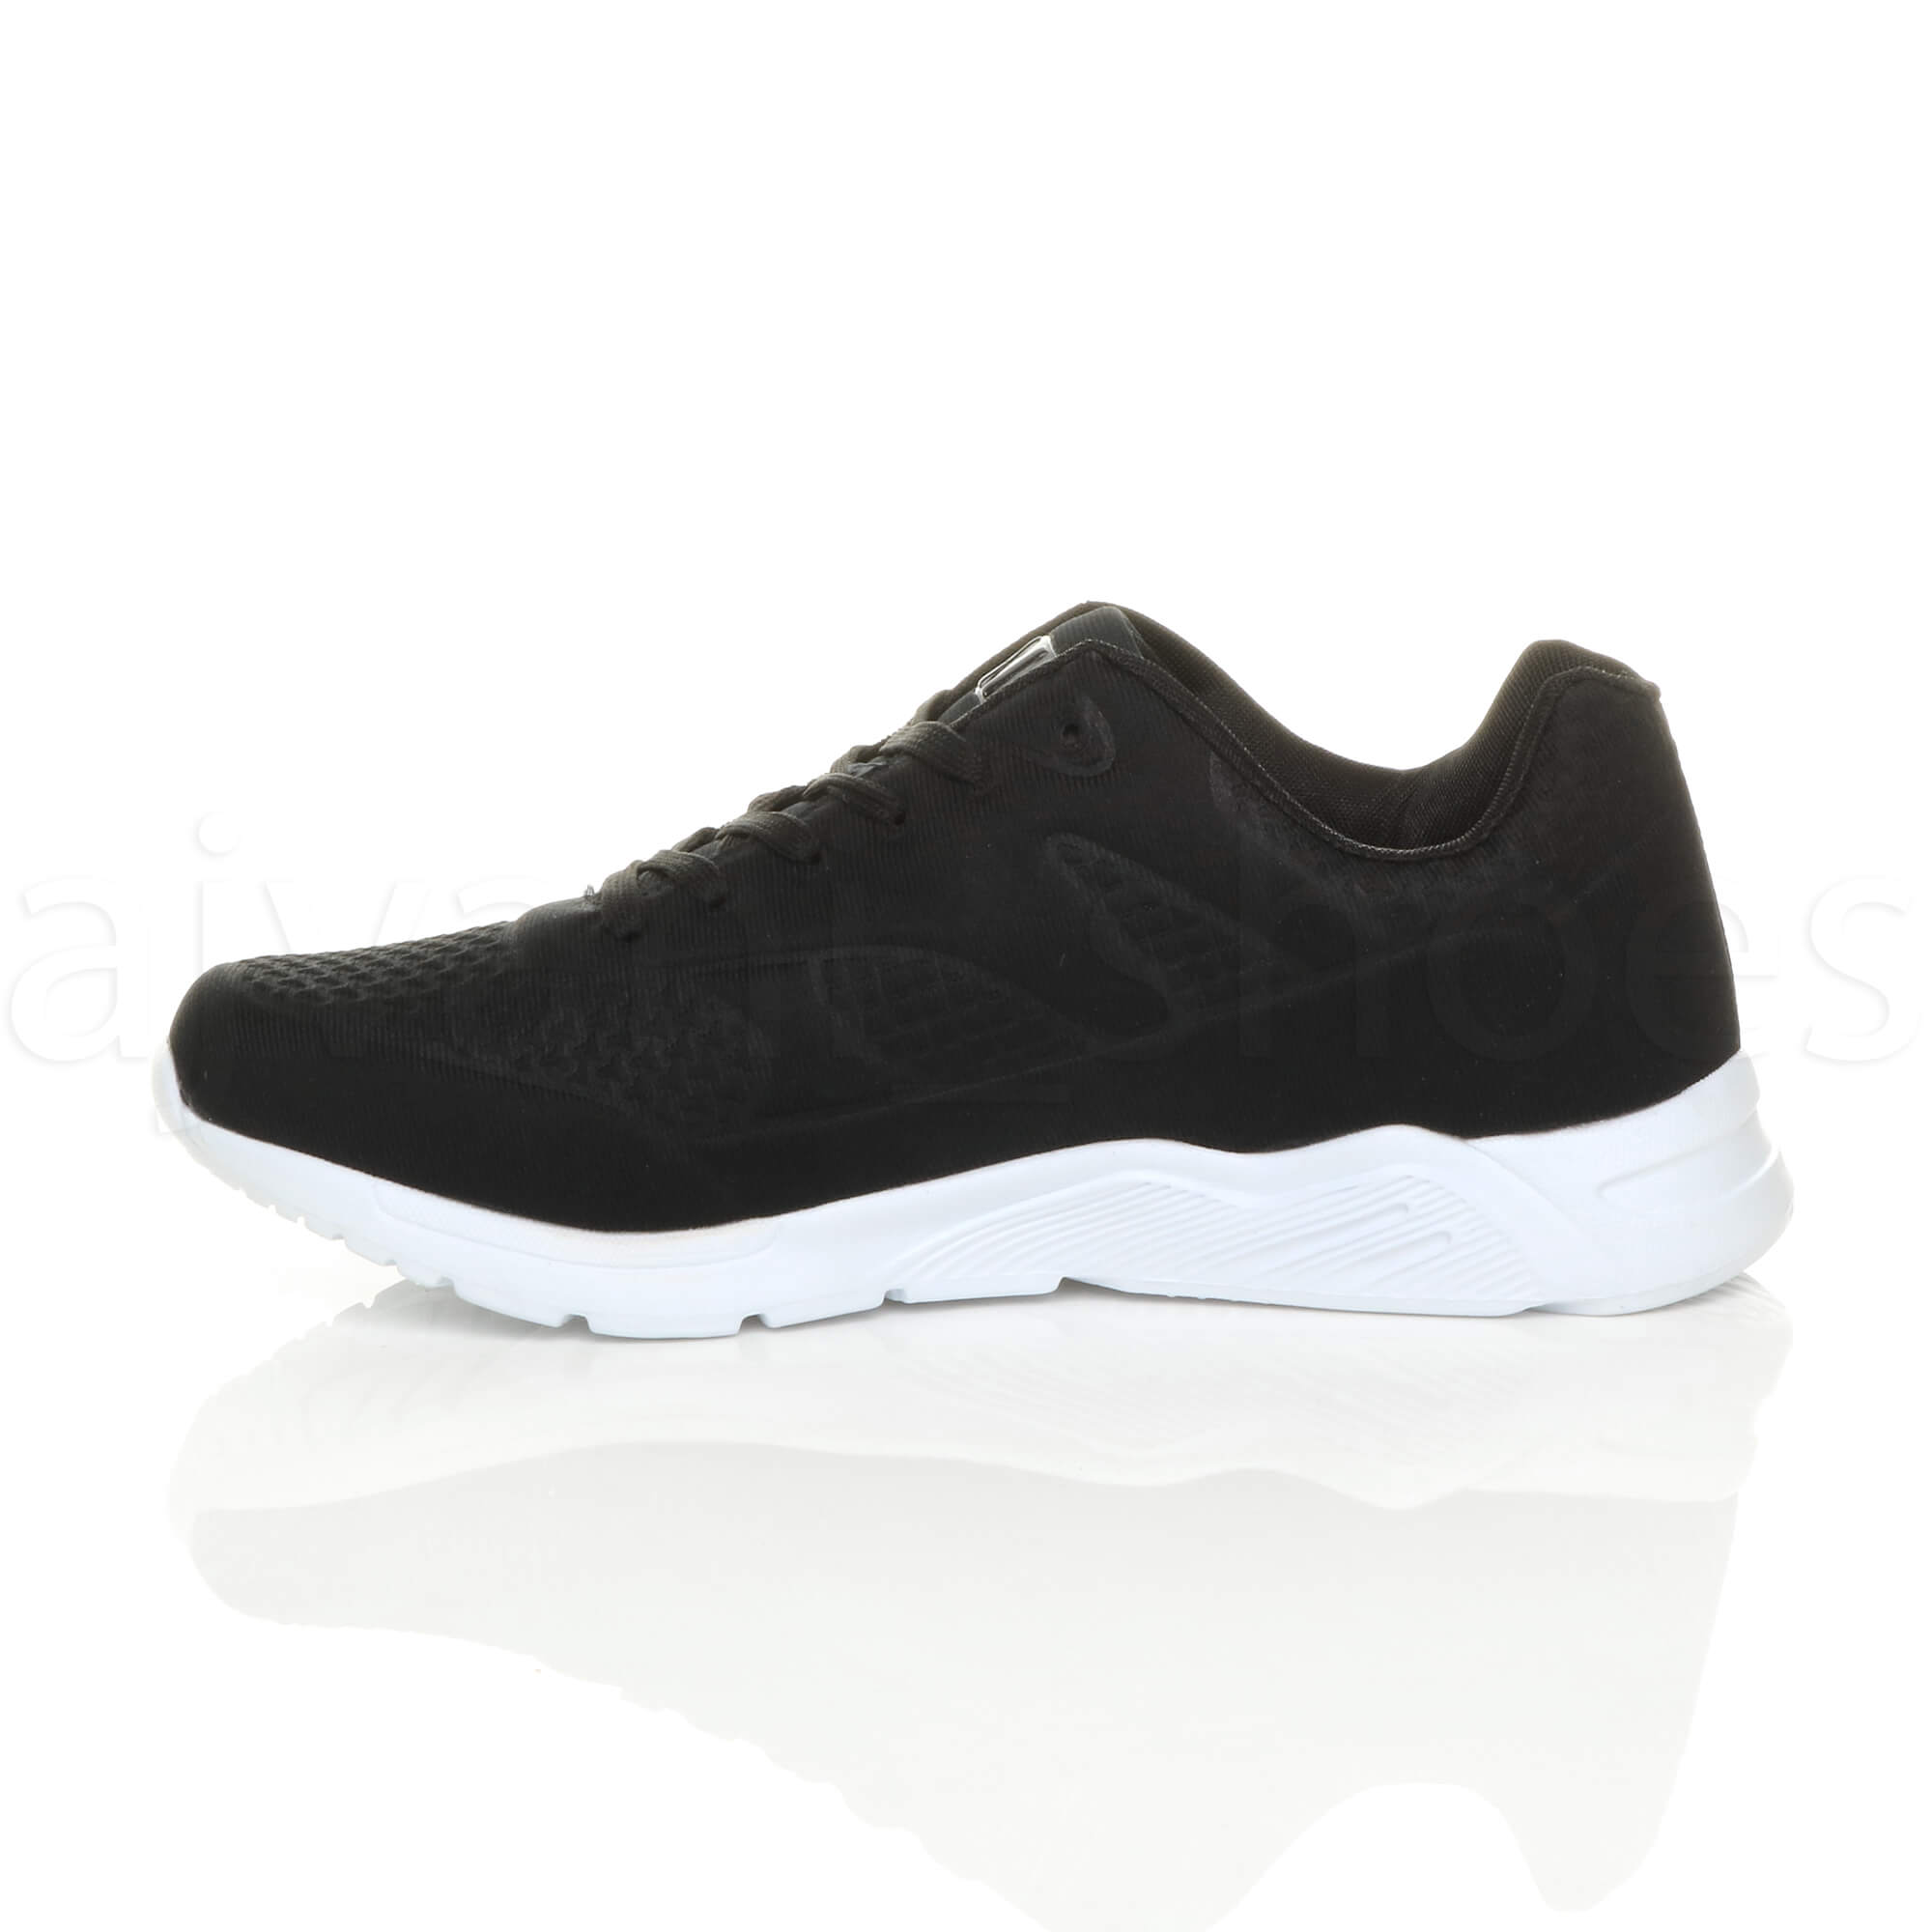 MENS-LACE-UP-FLEXIBLE-SOLE-RUNNING-SPORT-GYM-FITNESS-TRAINERS-SNEAKERS-SIZE miniatuur 4